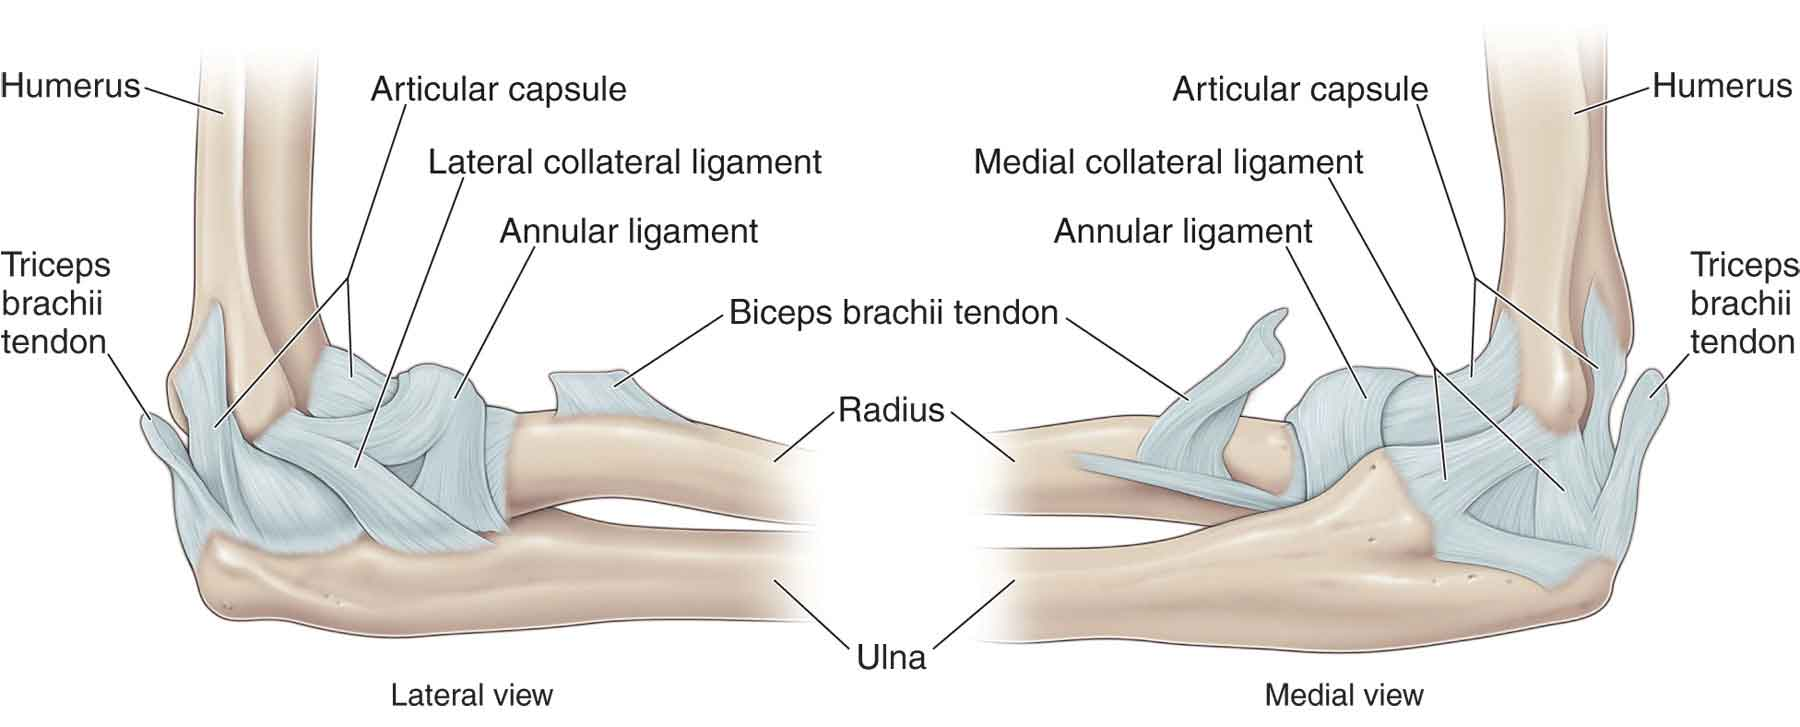 Lateral ulnar collateral ligament anatomy 1082008 - togelmaya.info